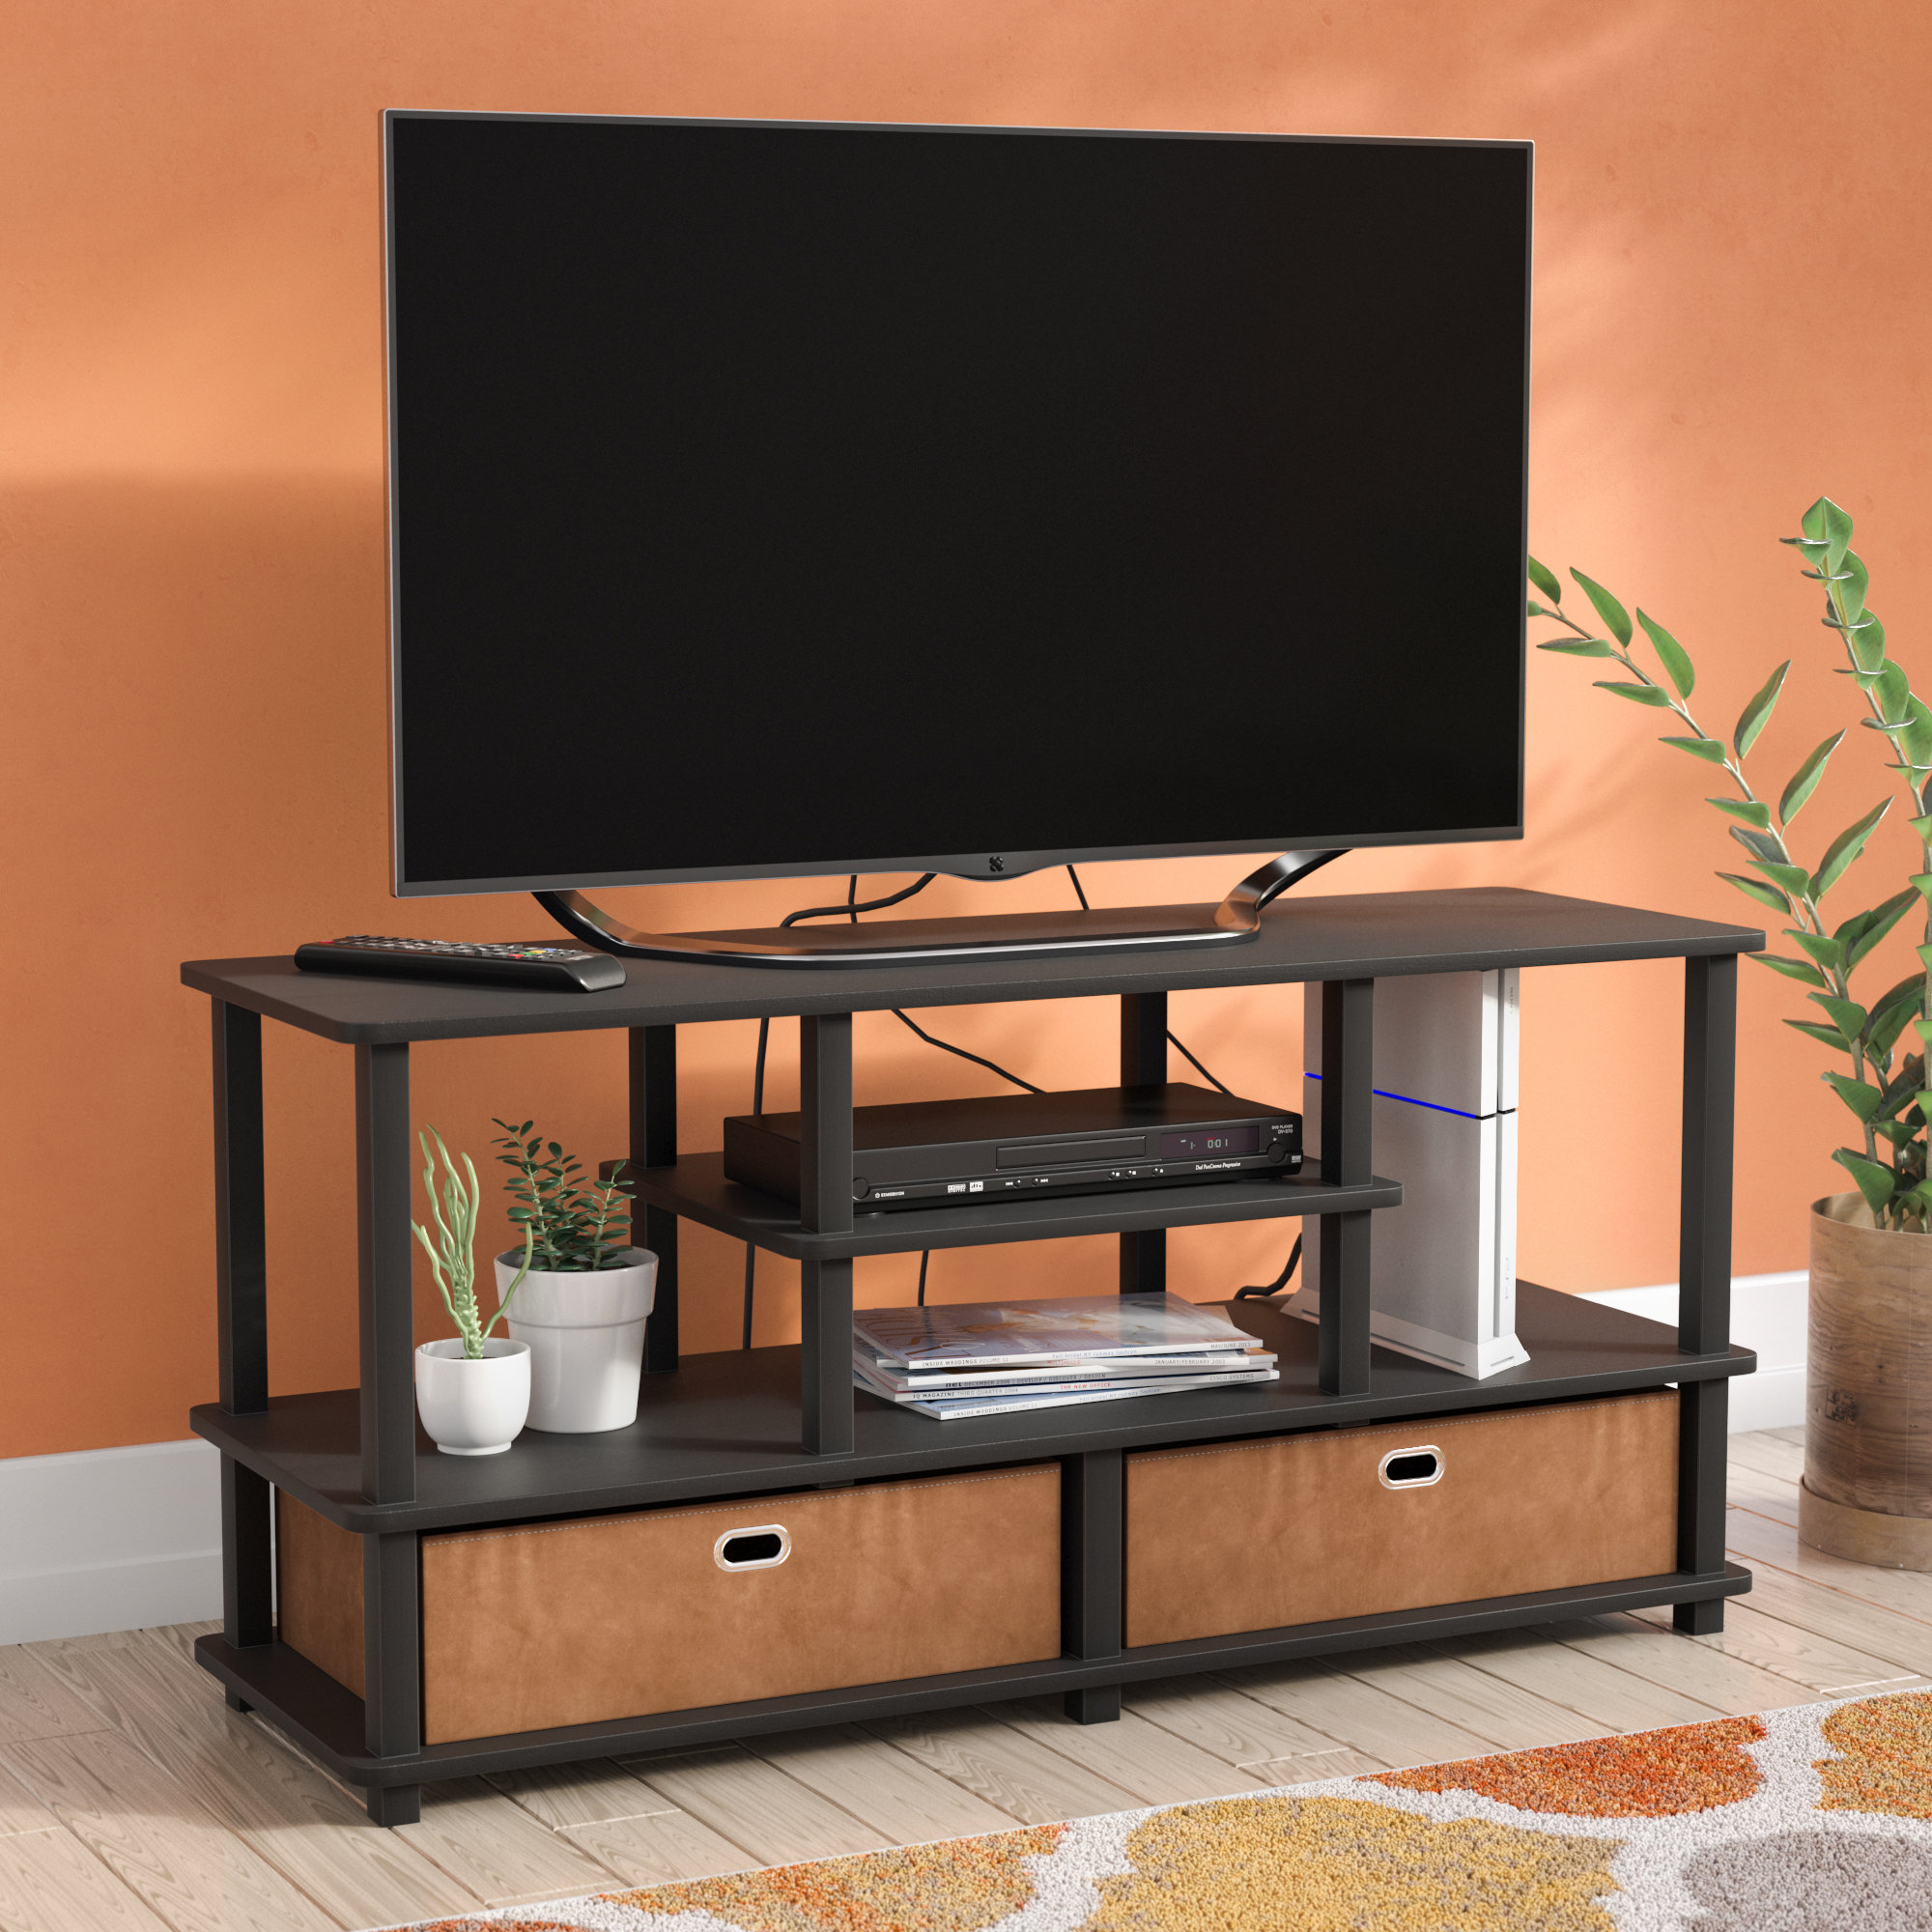 Mirrored Tv Stand | Wayfair.co.uk intended for Valencia 70 Inch Tv Stands (Image 9 of 30)